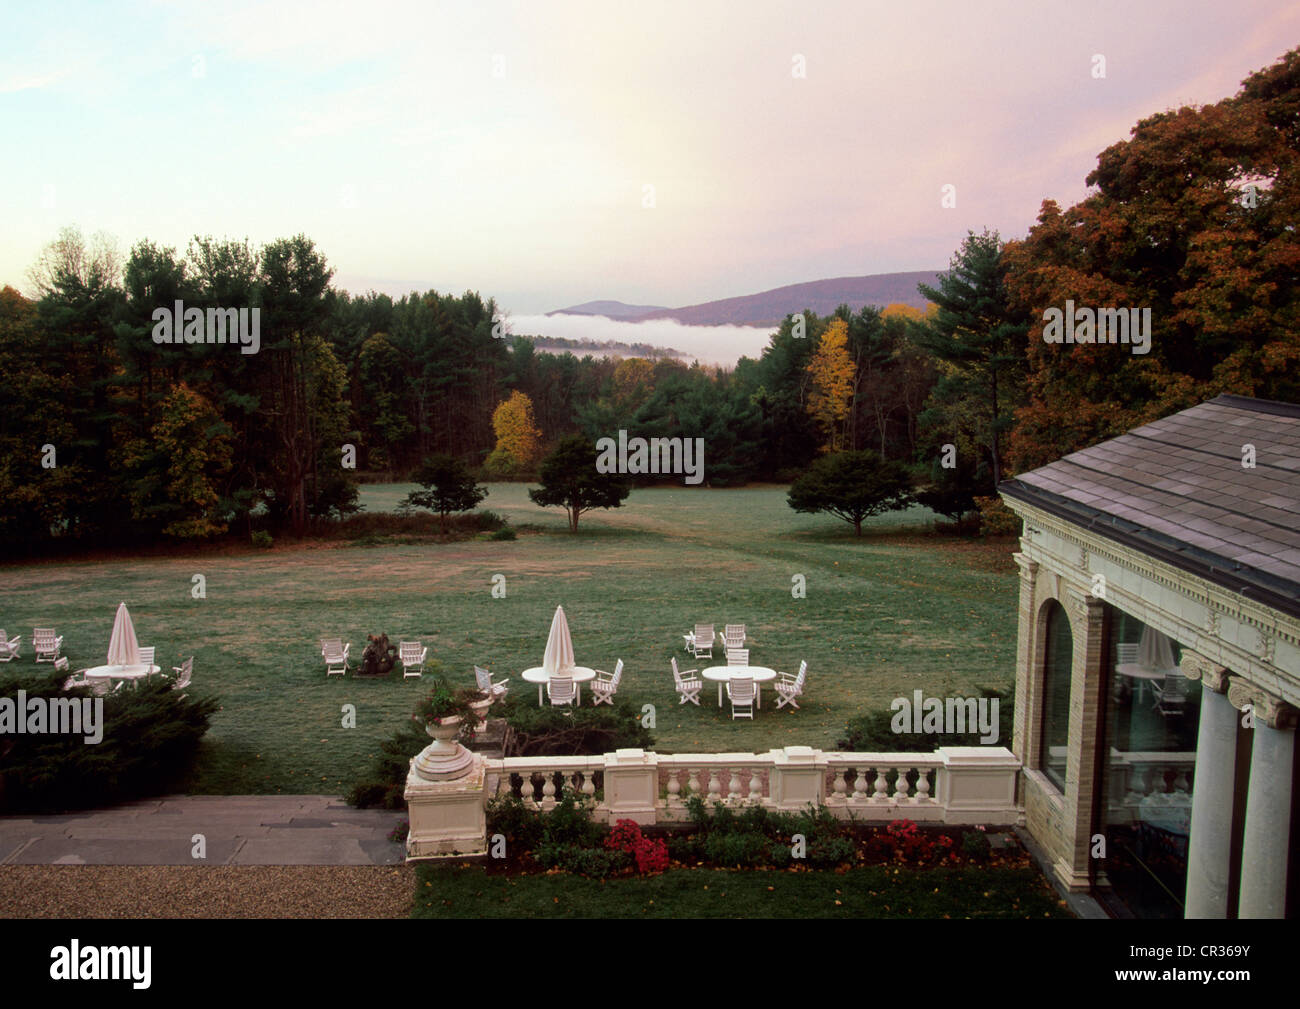 Stock photo united states massachusetts the berkshires lenox wheatleigh inn luxury hotel